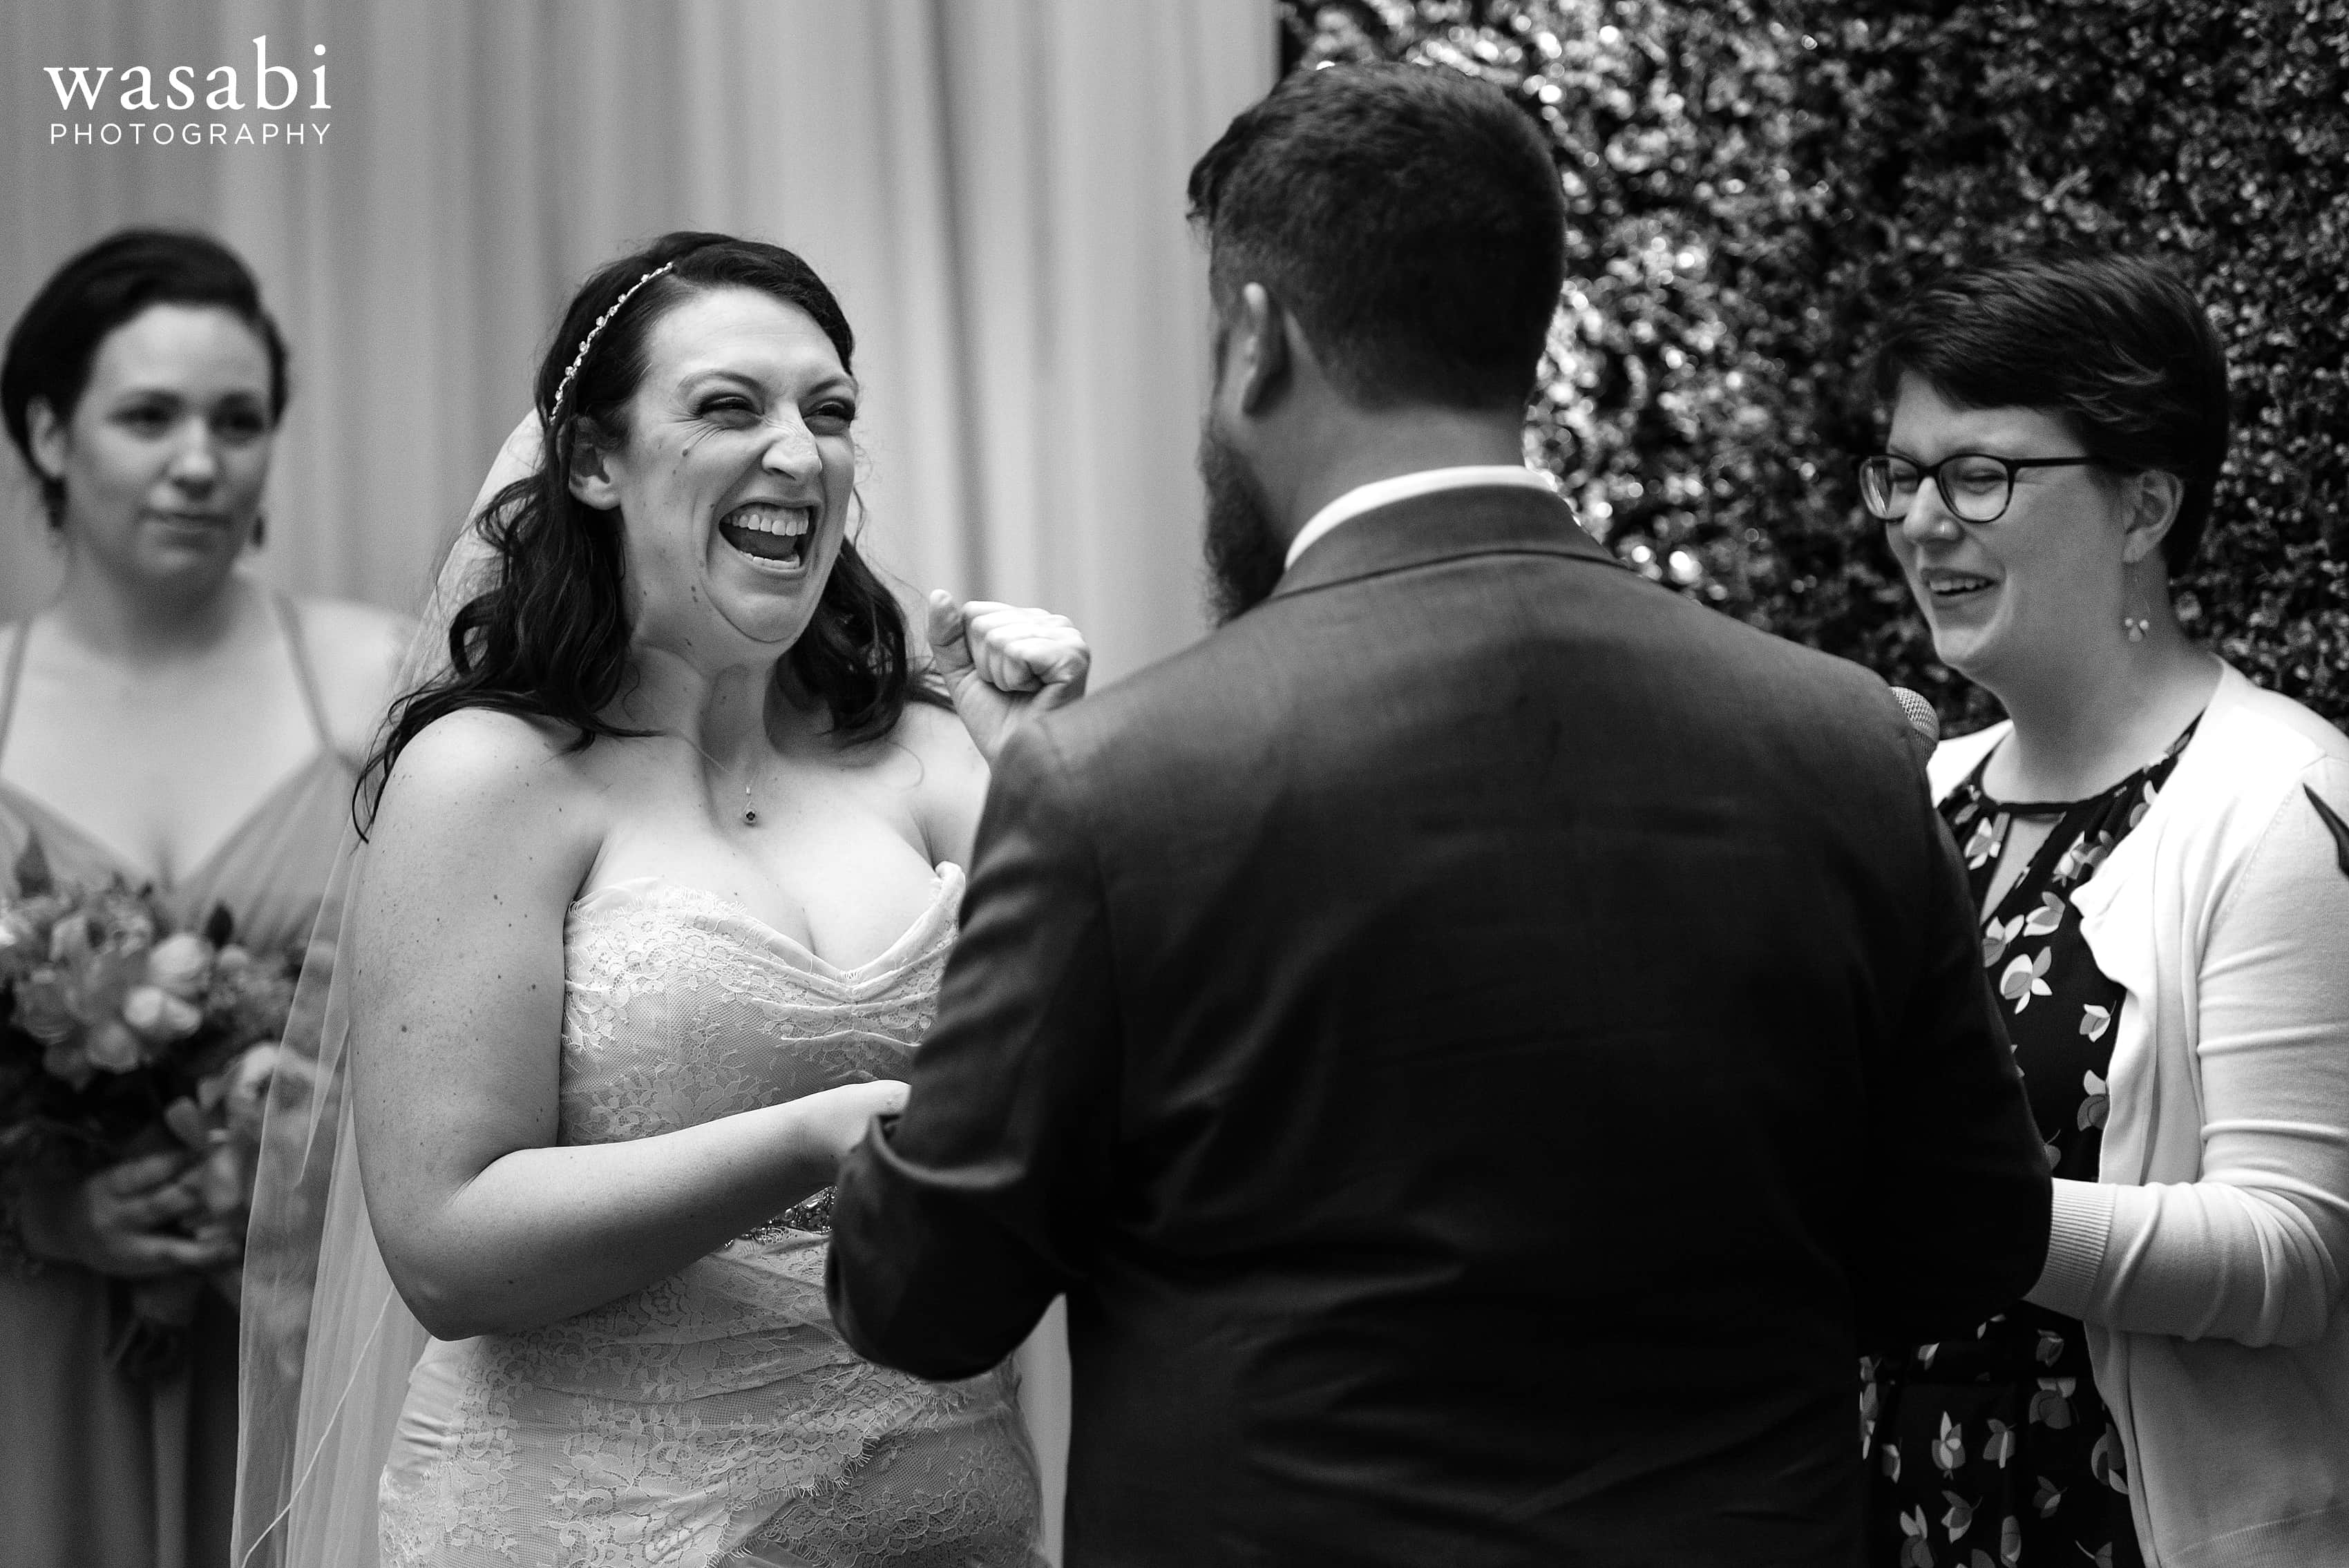 A bride reacts during her vows at her wedding ceremony at Loft on Lake in Chicago